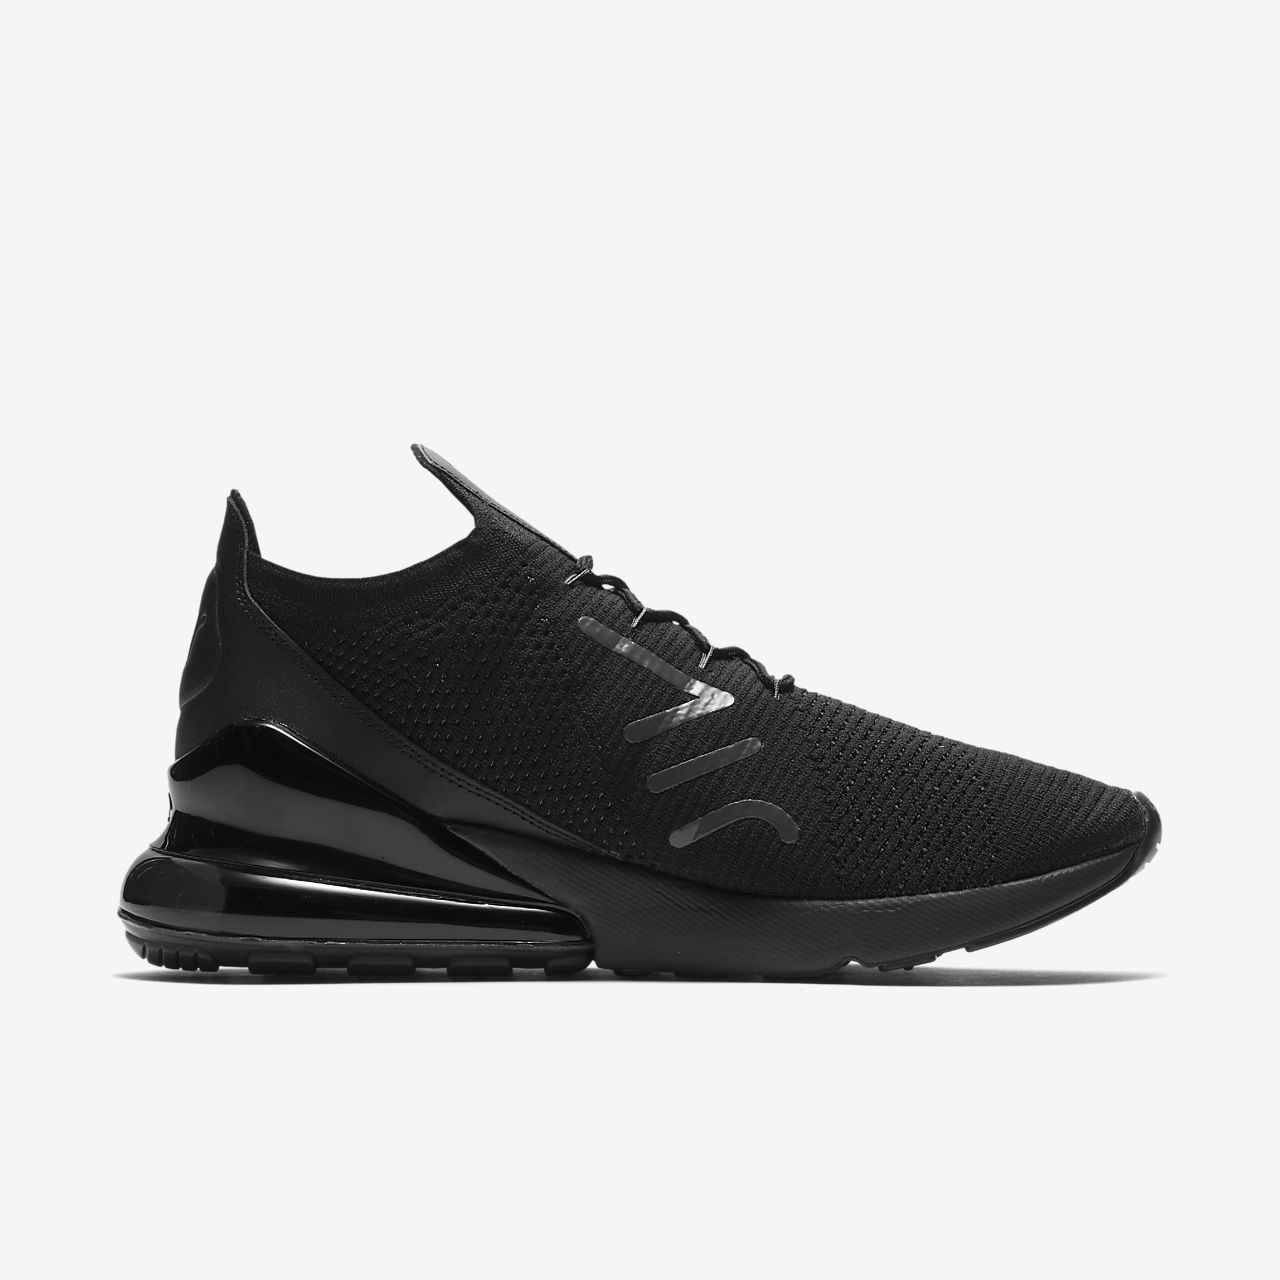 finest selection 26866 4ae93 Nike Air Max 270 Flyknit Men's Shoe